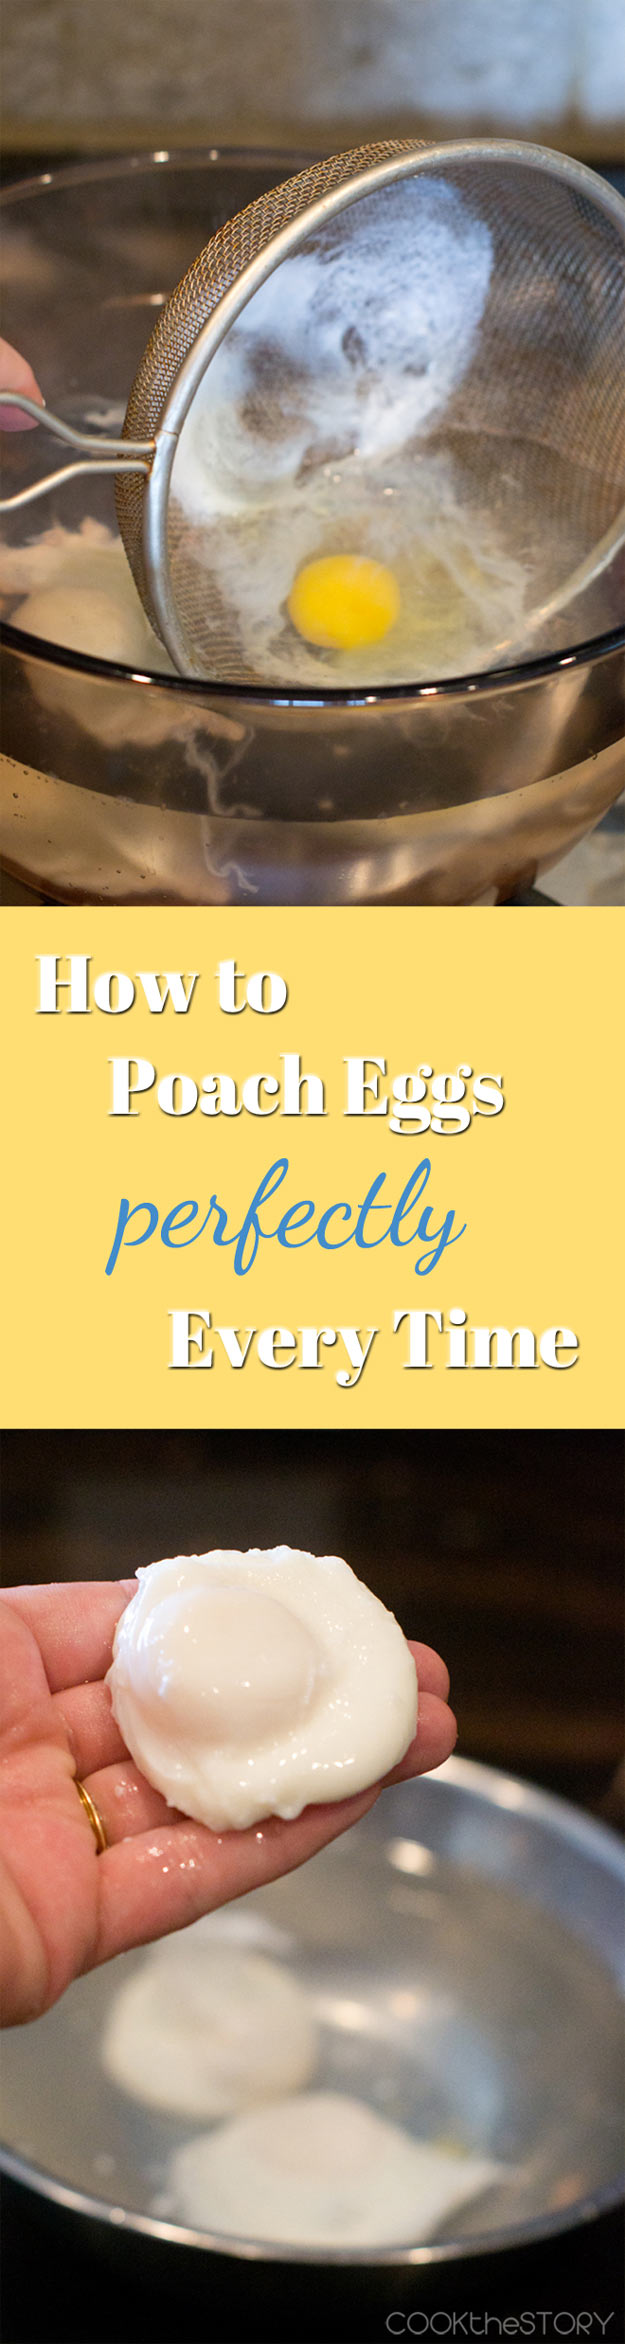 Coolest Cooking Hacks, Tips and Tricks for Easy Meal Prep, Recipe Shortcuts and Quick Ideas for Food | Poach Eggs Perfectly Every Time | http://cooking-tips-diy-kitchen-hacks